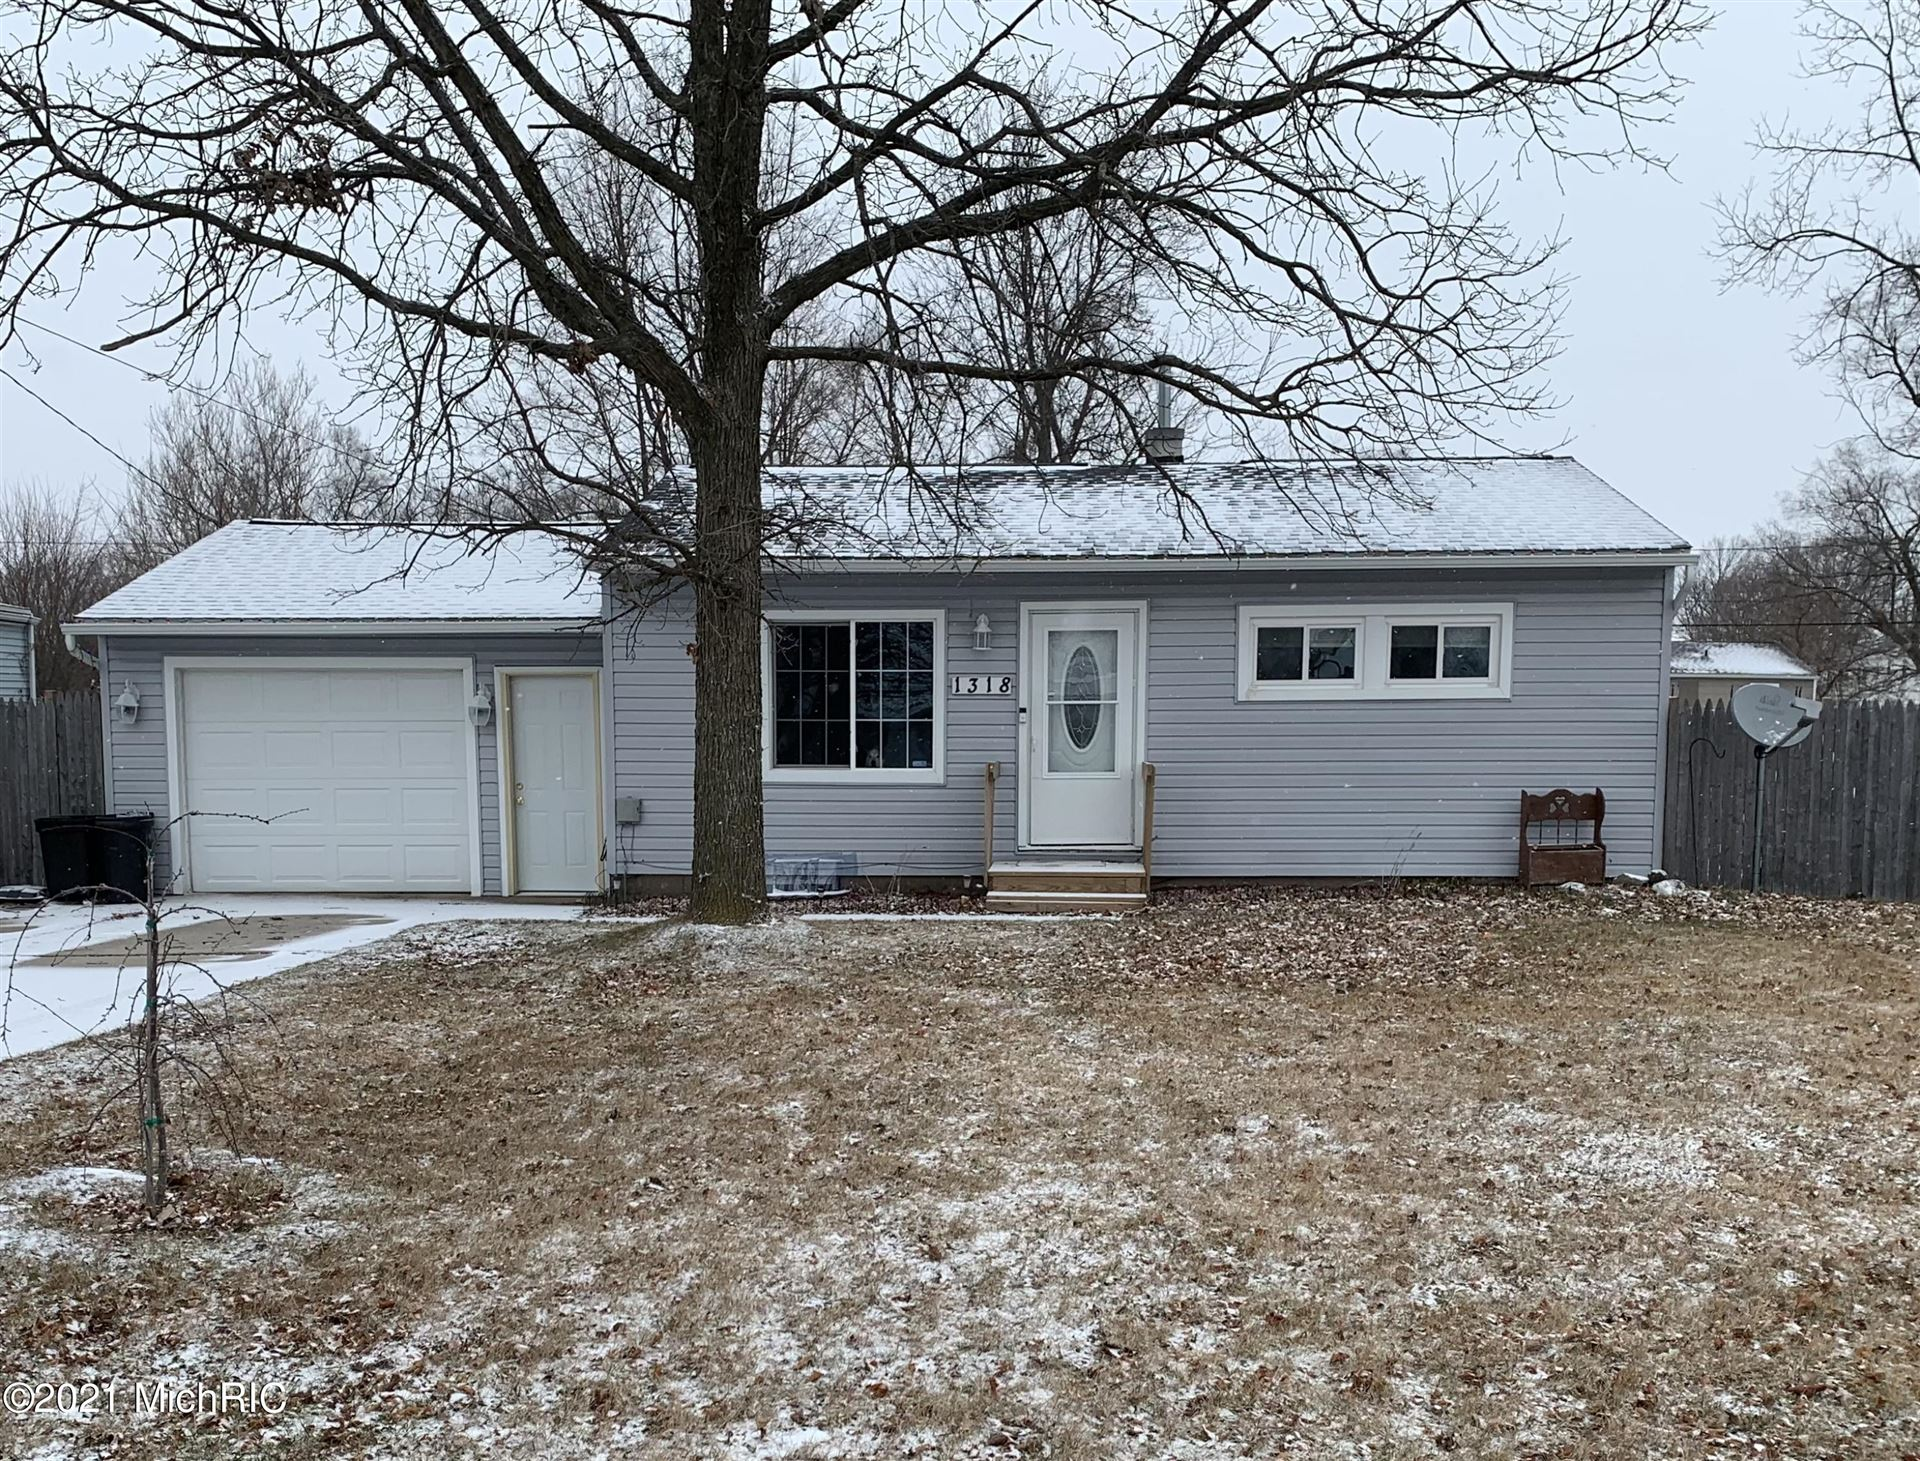 1318 Lakeview Avenue, Battle Creek, MI 49015 - MLS#: 21002614